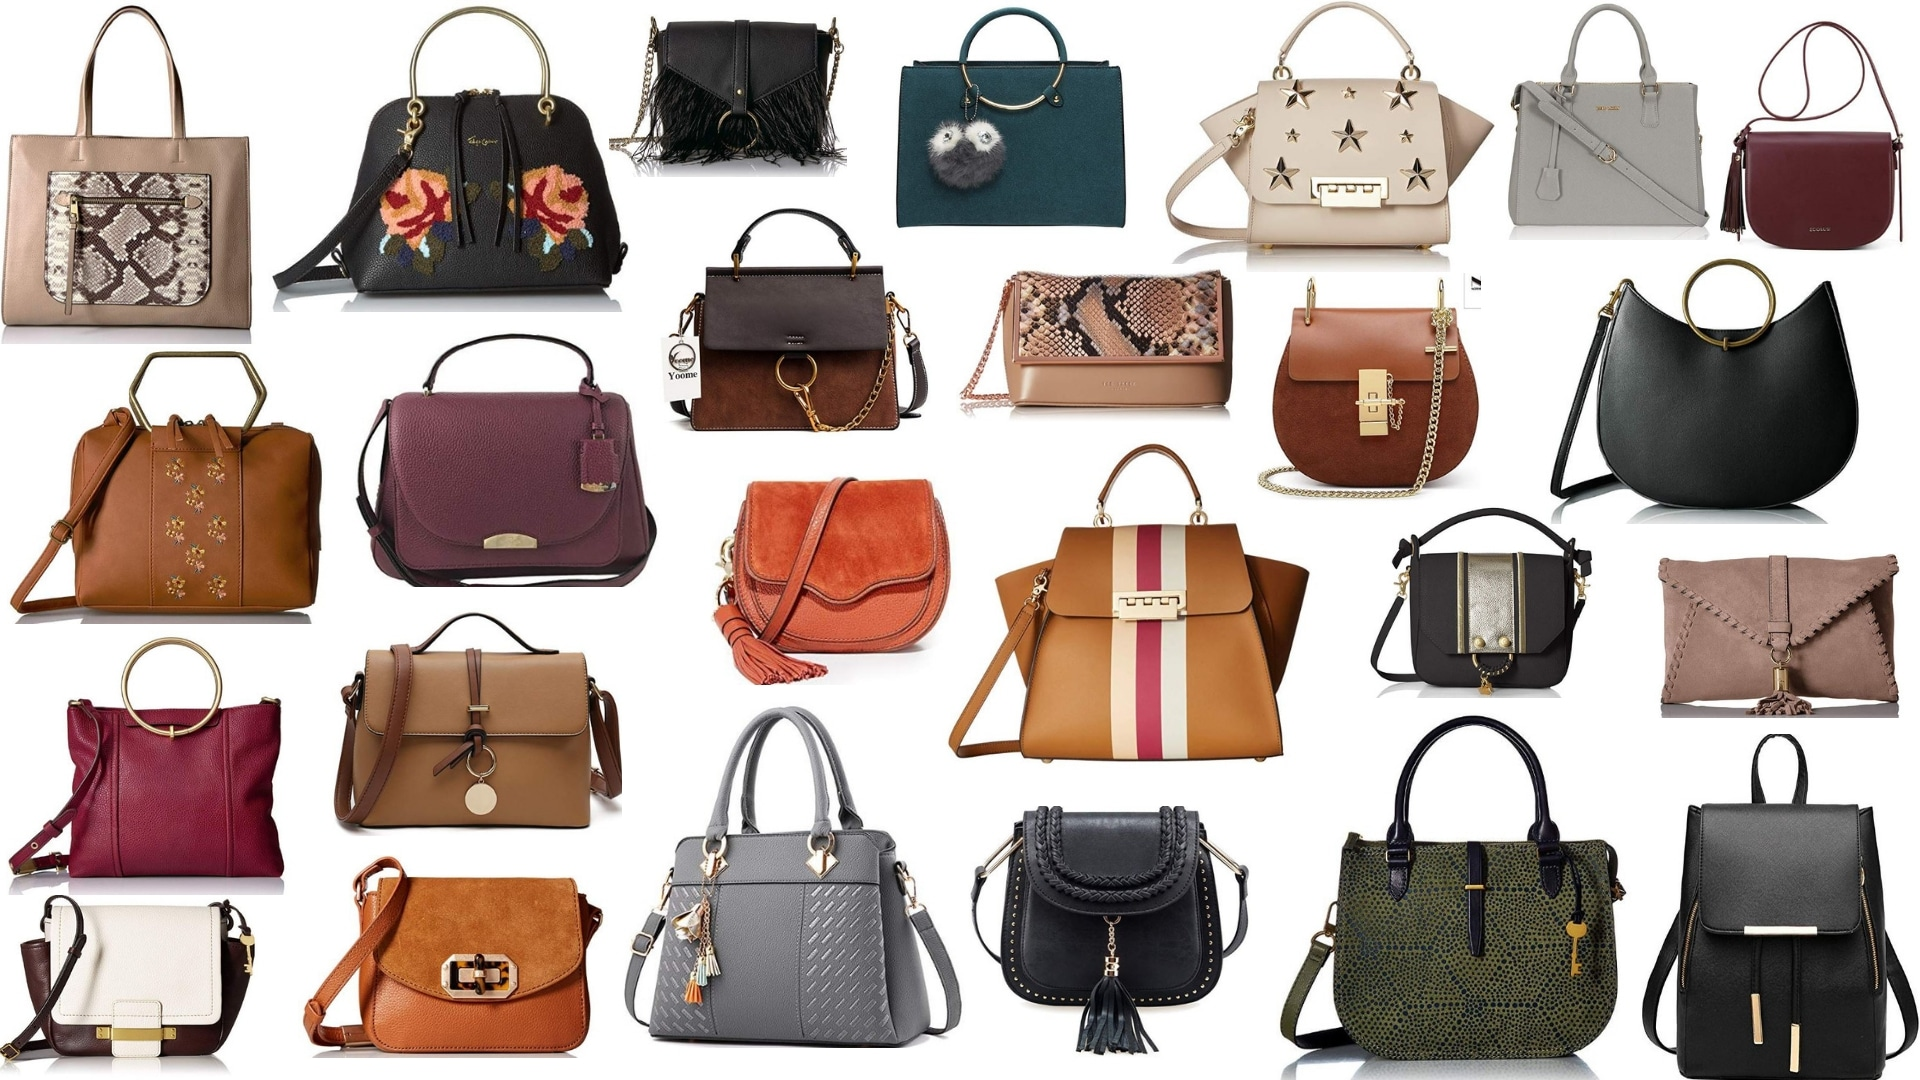 25 Must-Have Bags for Fall | Best Purses for Fall on Amazon Prime